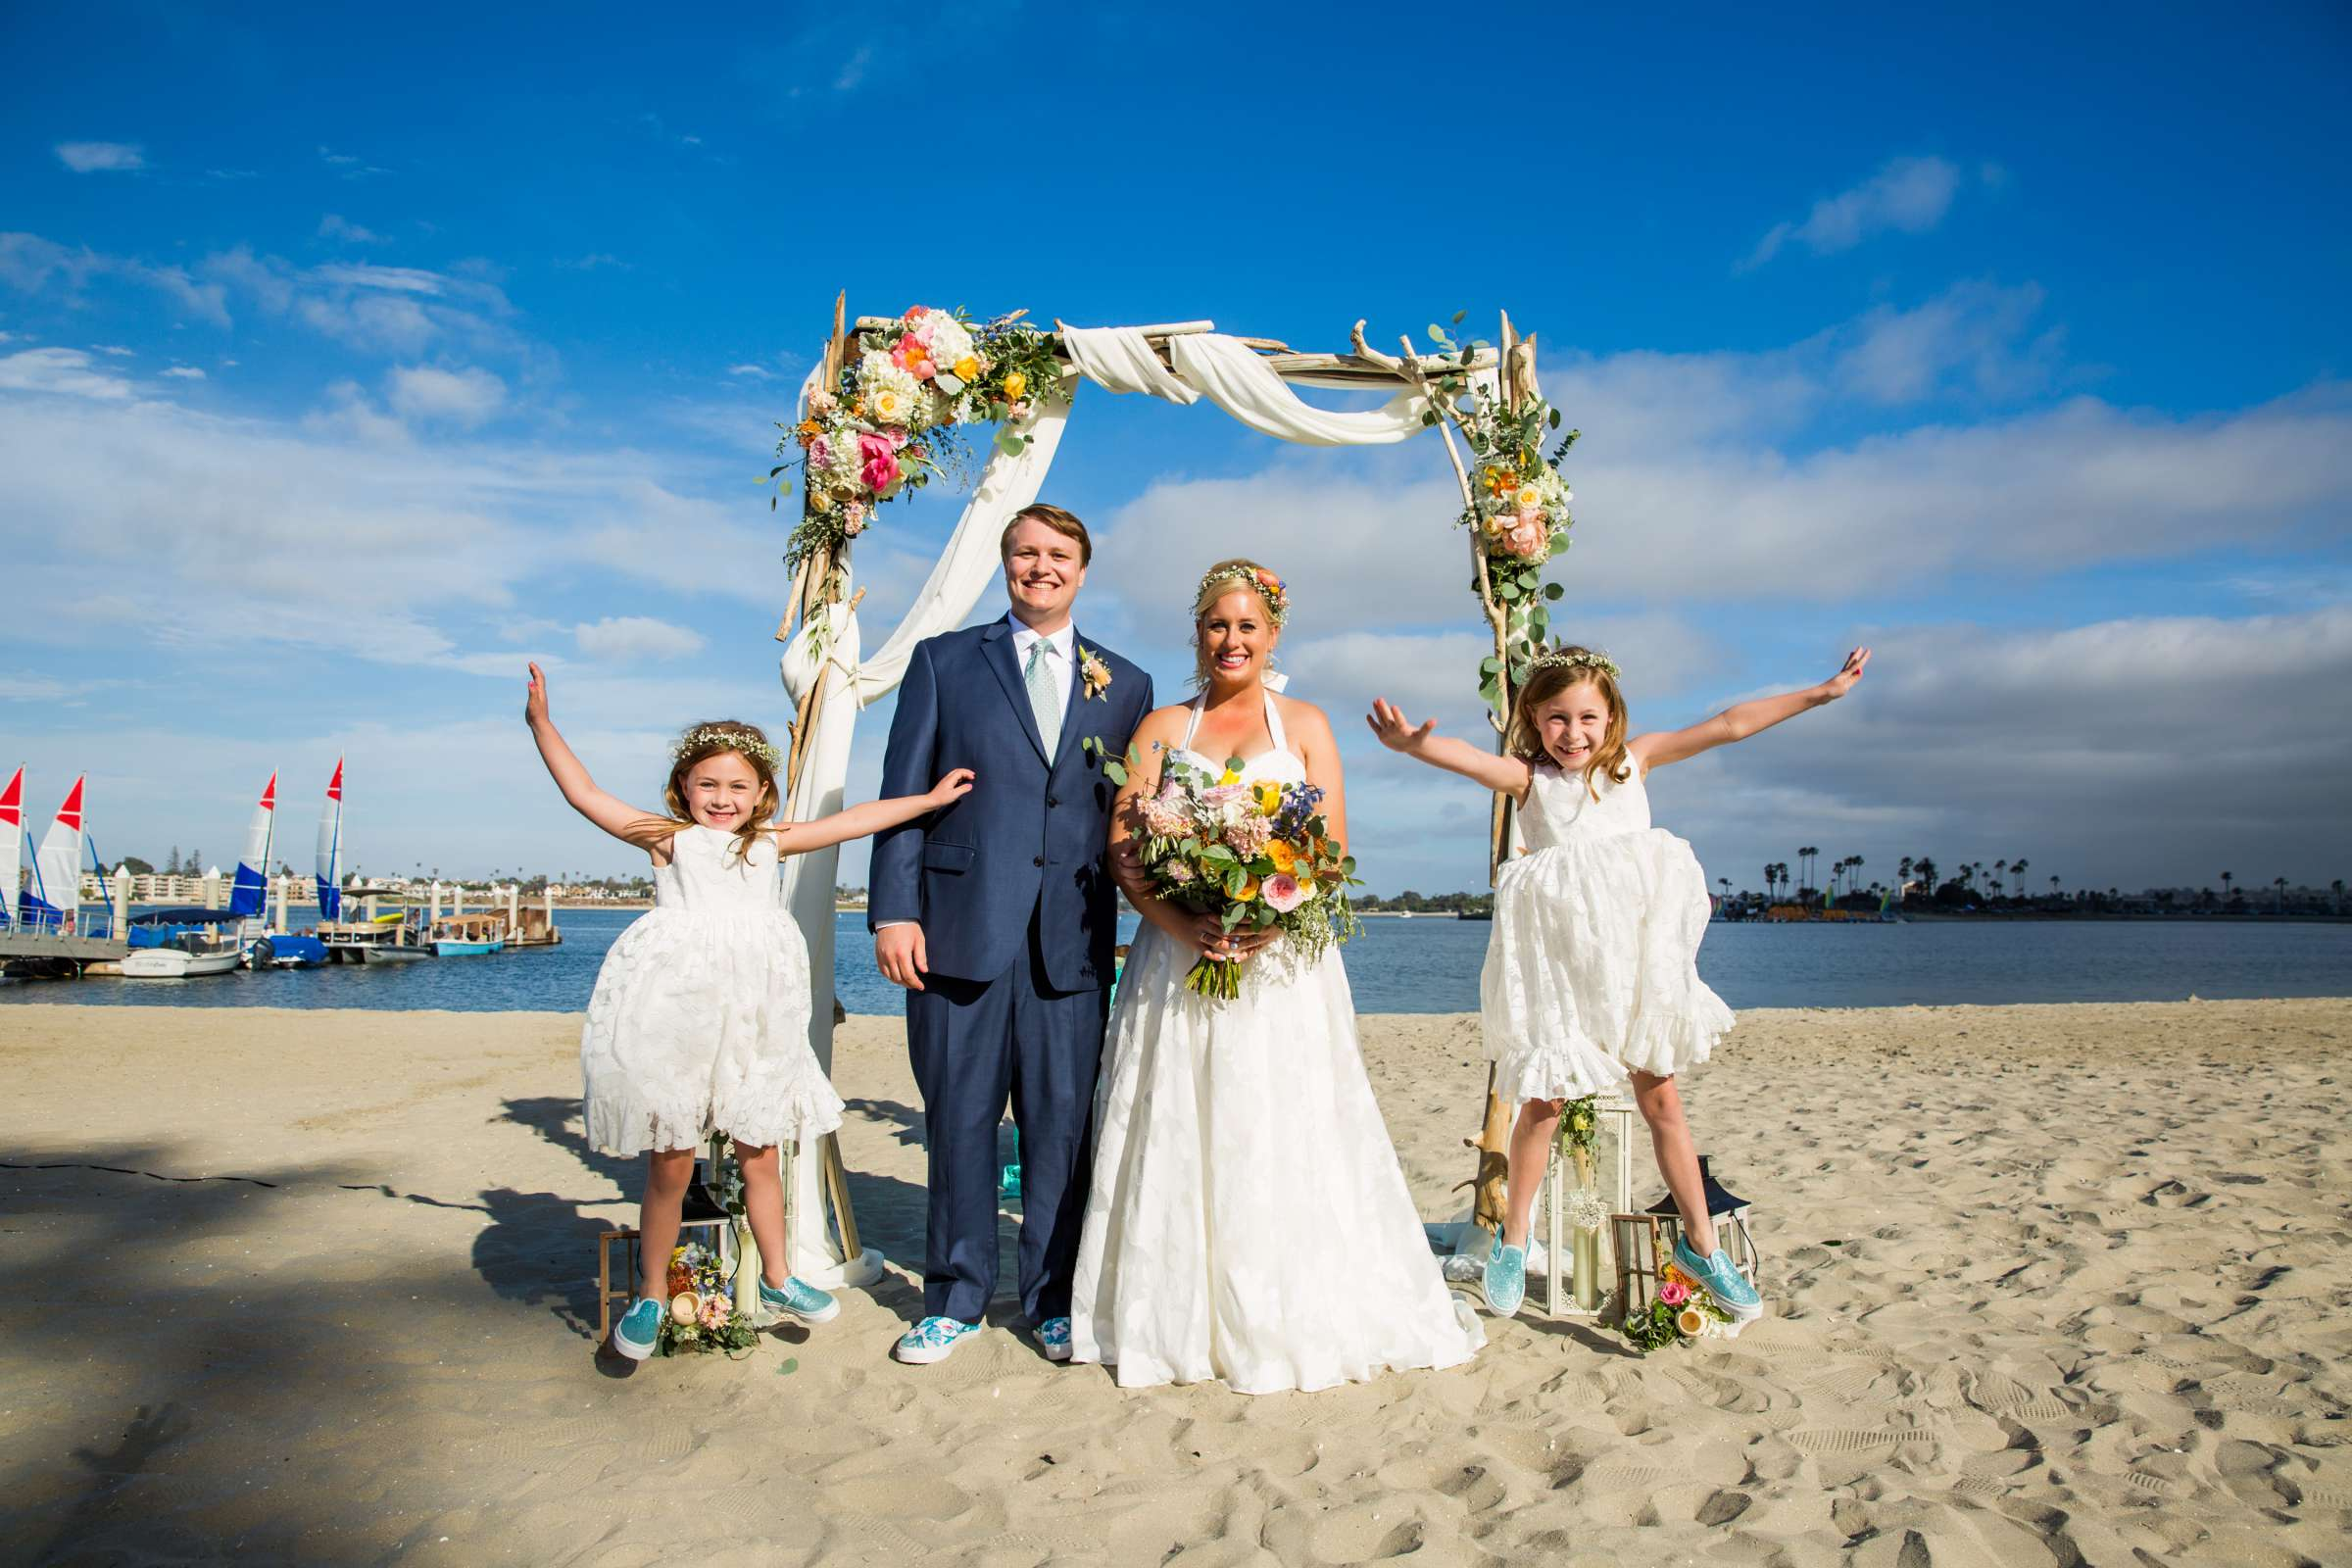 Catamaran Resort Wedding coordinated by Lavish Weddings, Brittany and David Wedding Photo #15 by True Photography